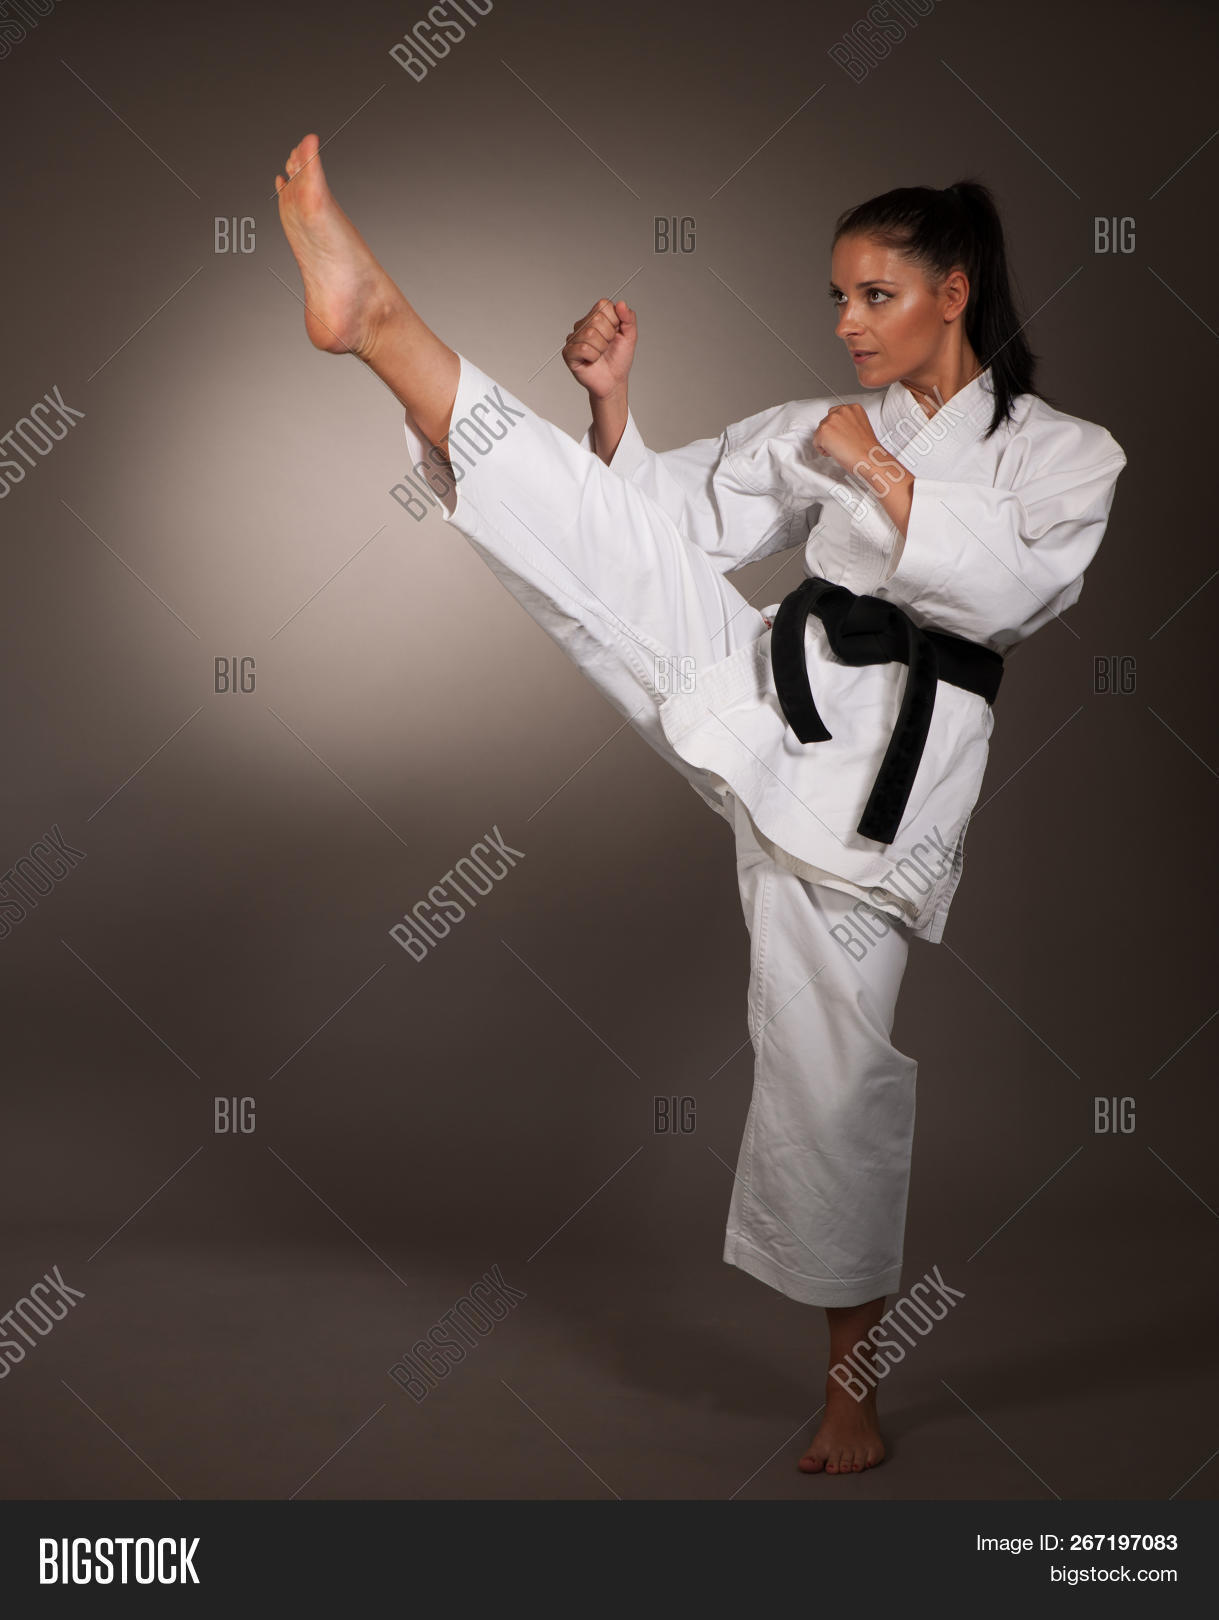 Woman In White Kimono Kicks High In The Air - A Karate Martial Art Girl